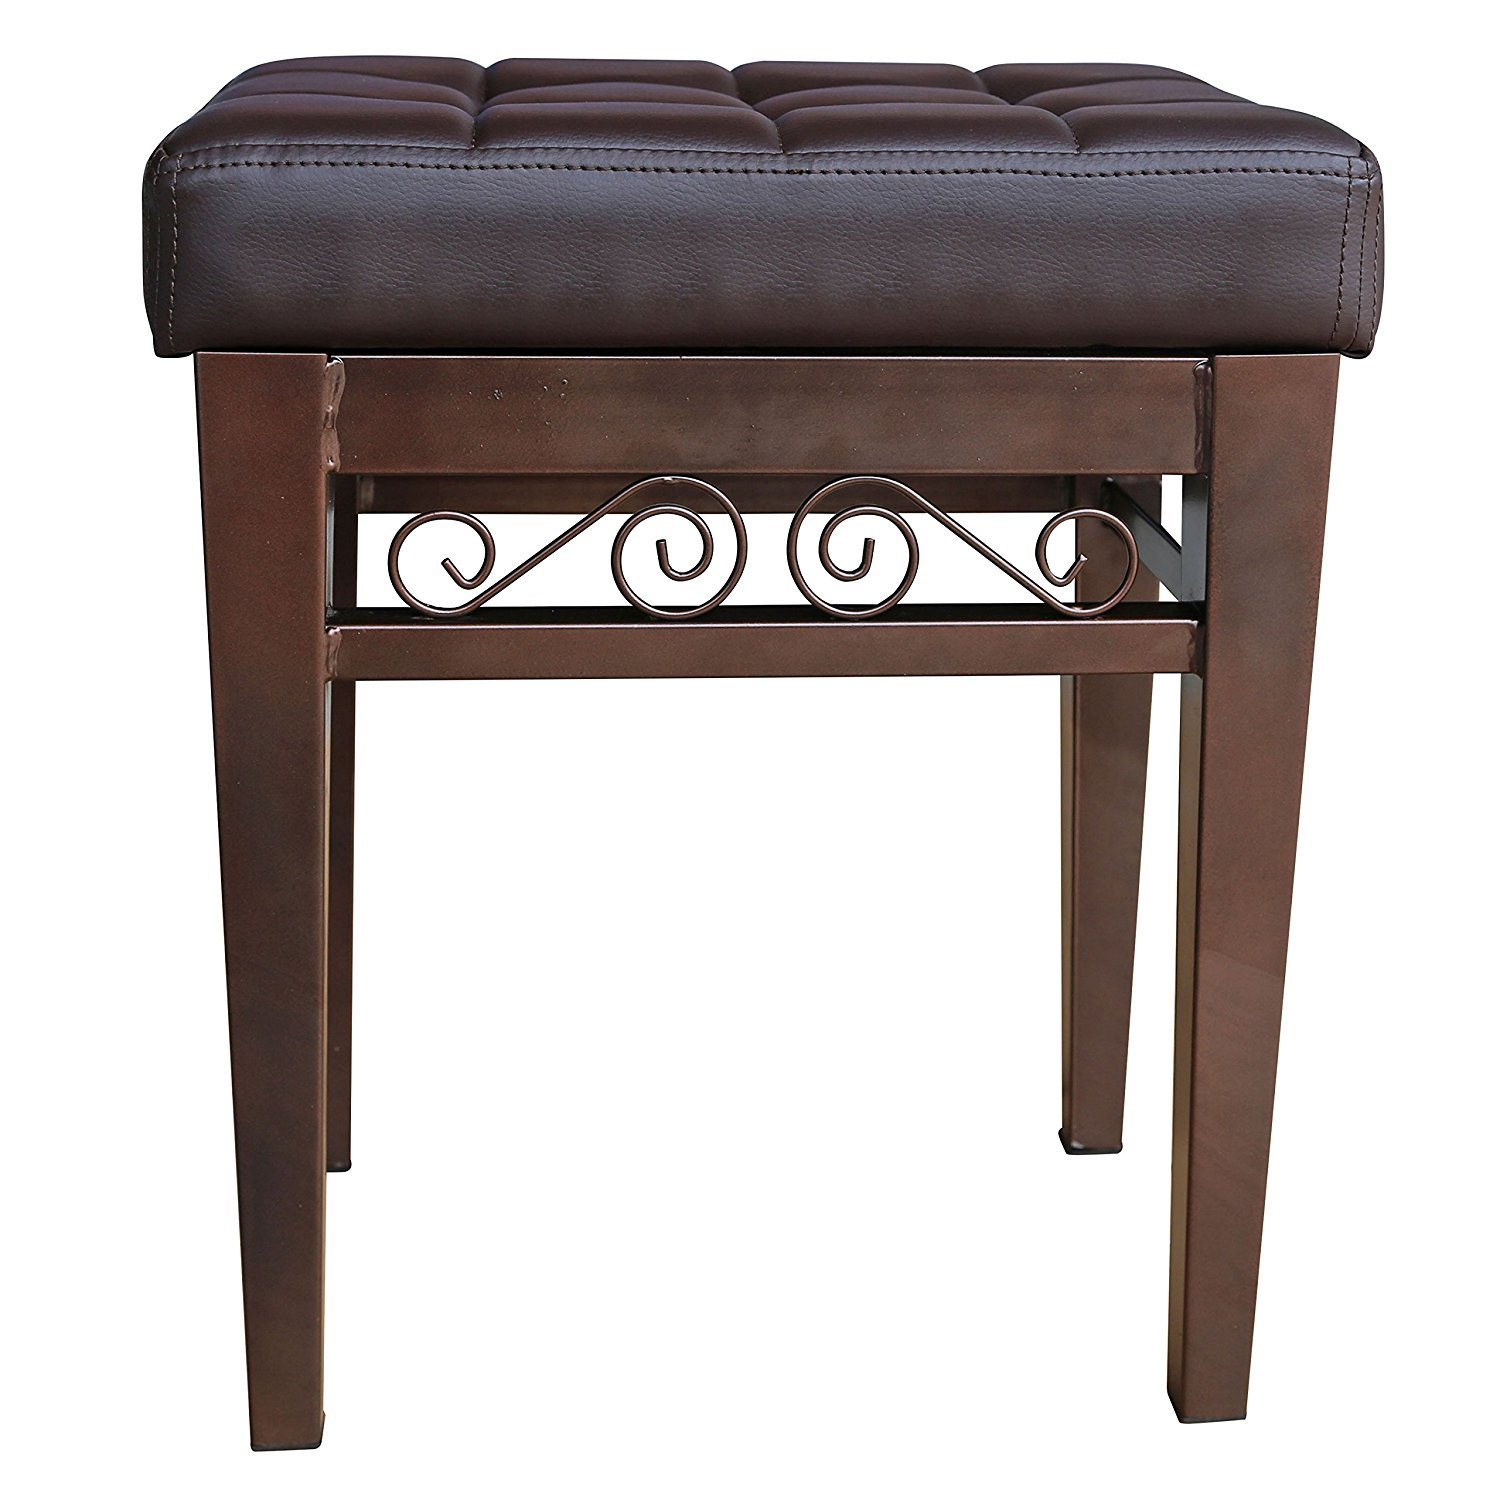 Crownroyaljack Furniture Square Piano Bench Home